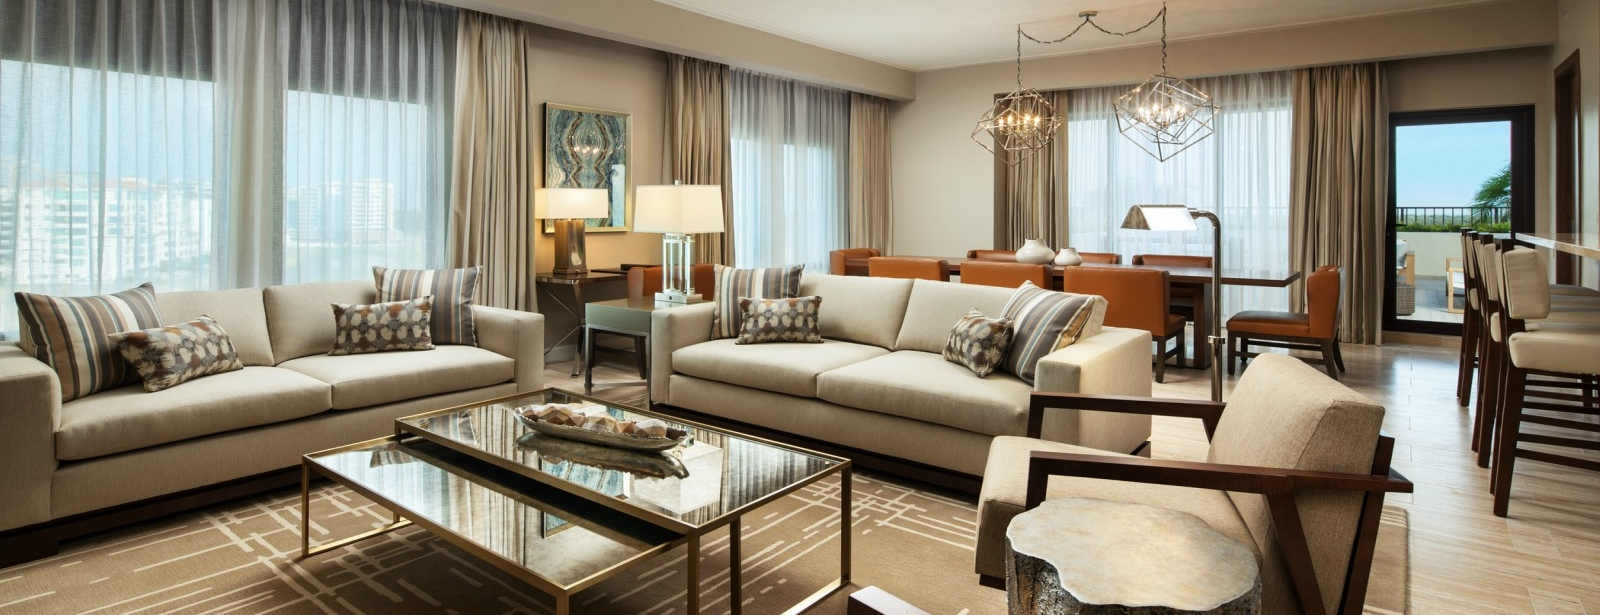 Master Suite & Grand Suite | The Santa Maria, A Luxury Collection Hotel